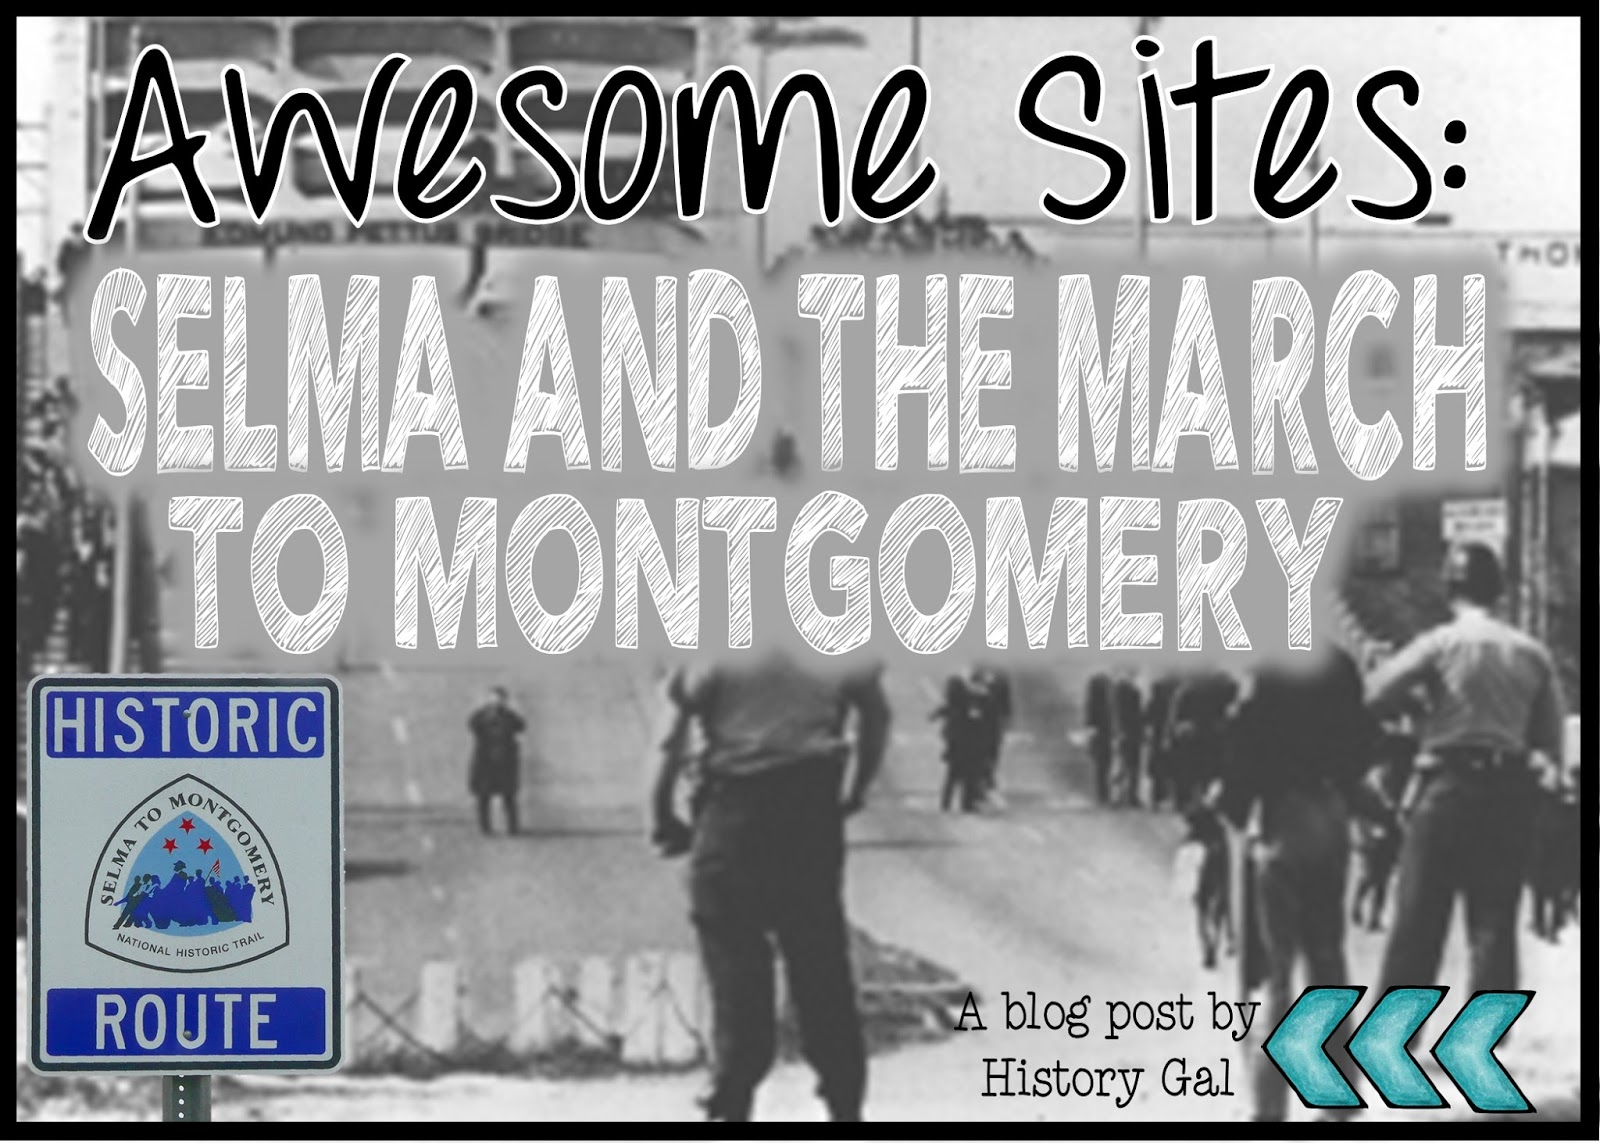 Selma and the March to Montgomery by History Gal